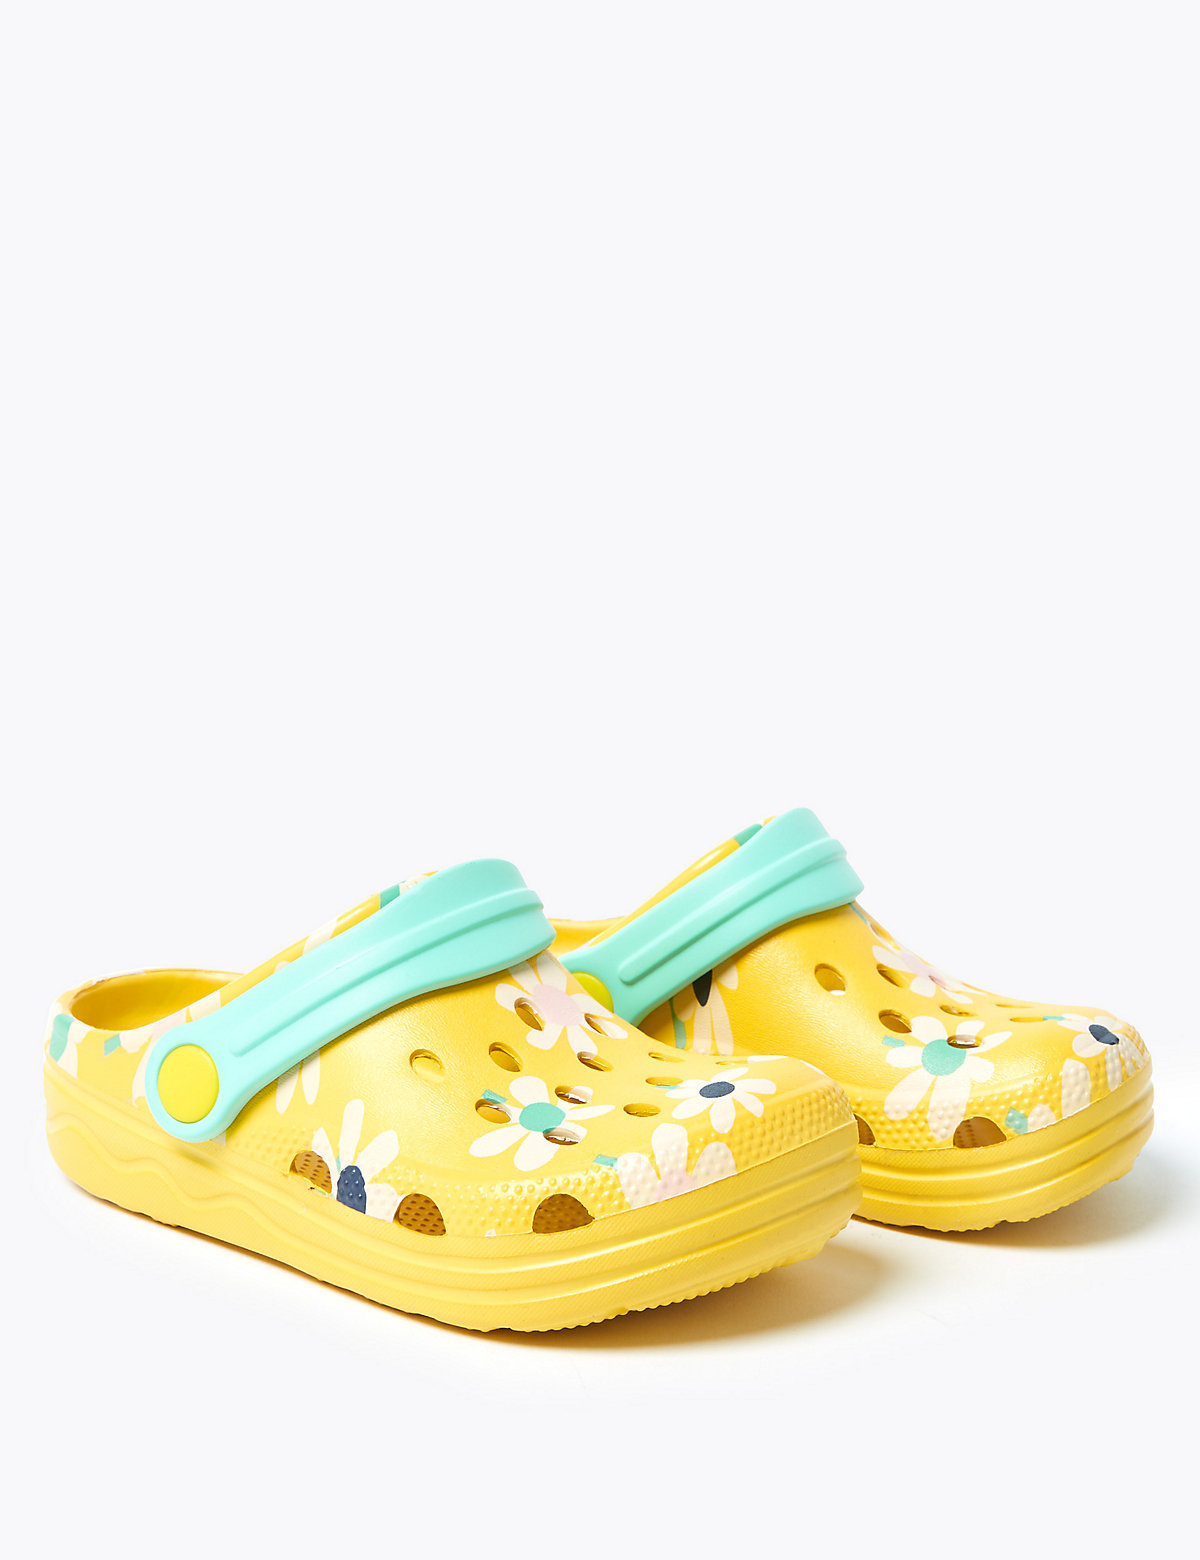 Kids' Floral Clogs (5 Small - 12 Small)